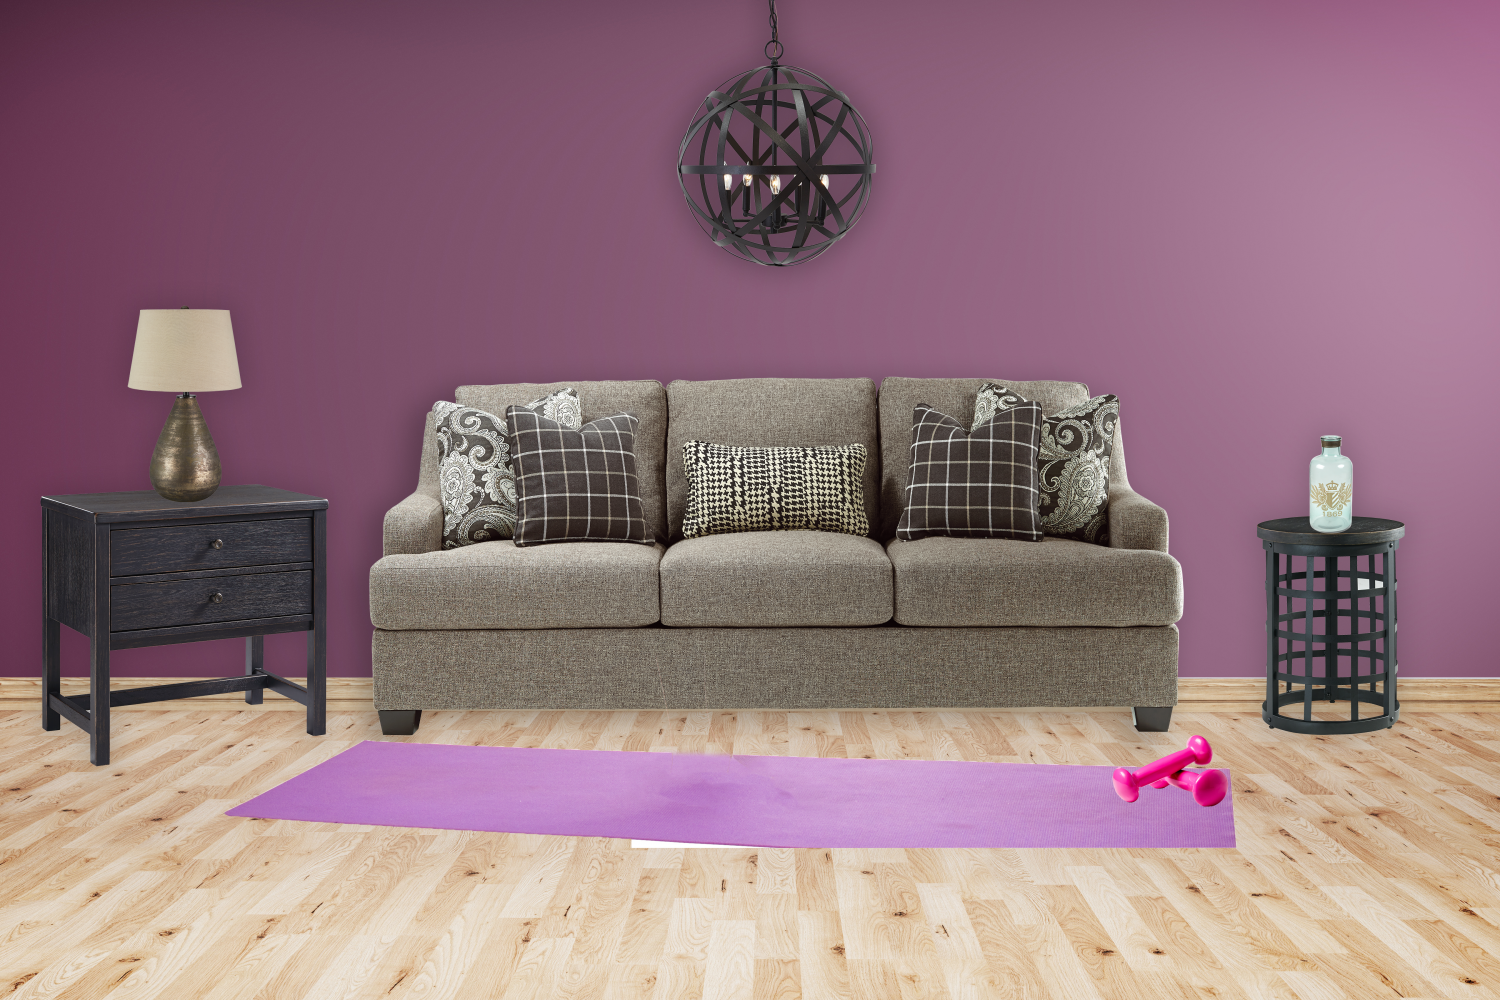 New Year S Resolutions Part 3 Getting Fit With Your Furniture Ashley Furniture Homestore Blog